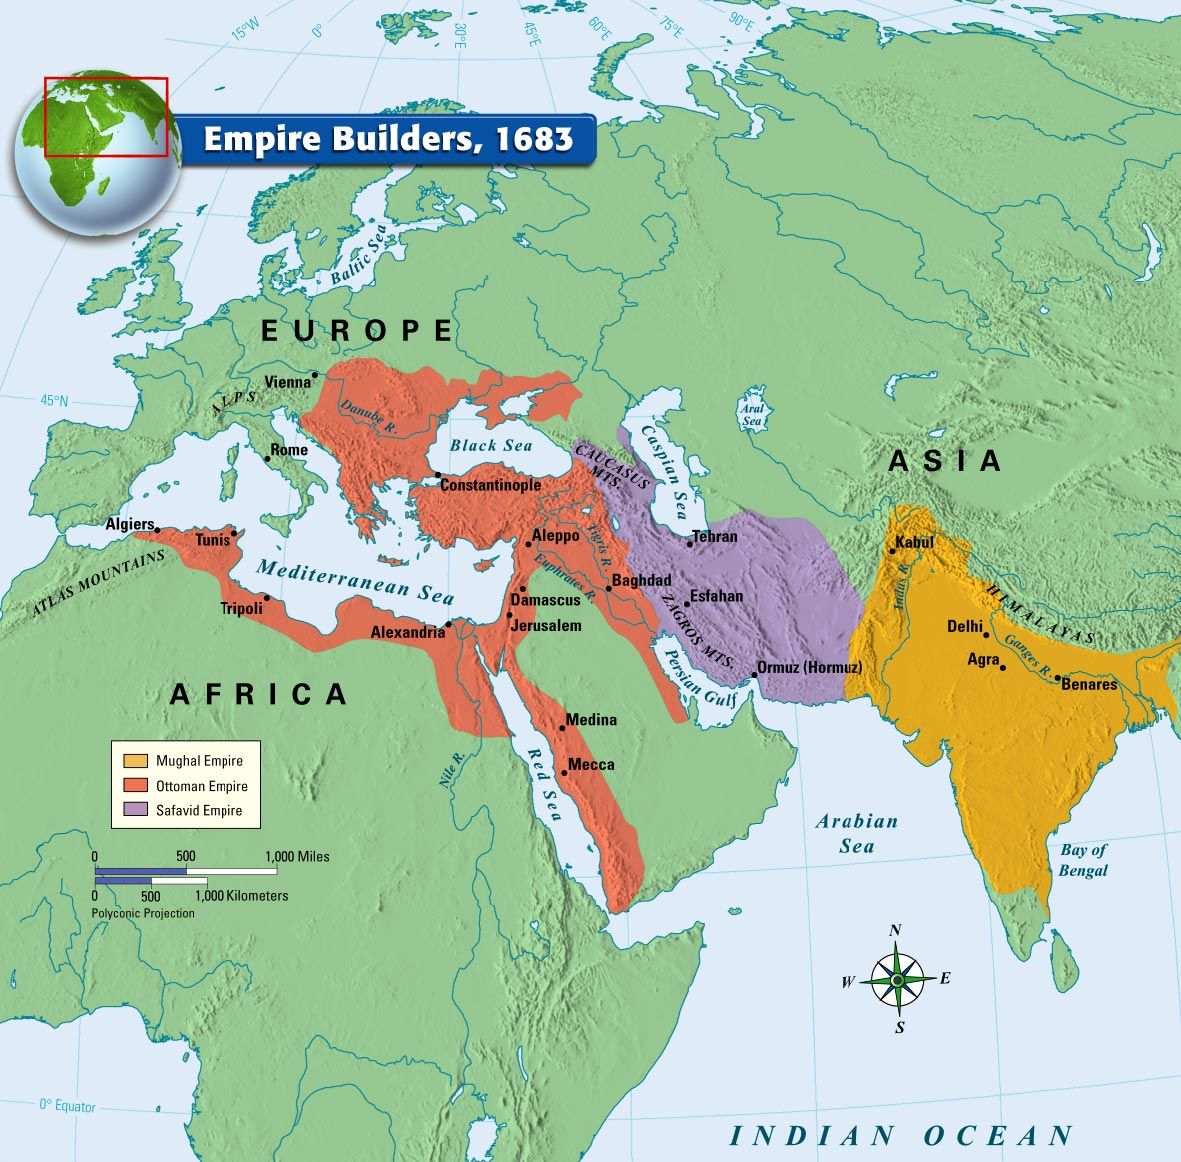 global exploration and global empires 1500 1700 History map of the world, 1500 bc, with bronze age civilizations of ancient   1100bce 700bce 300bce 100ce 500ce 900ce 1300ce 1700ce 2018ce   states, notably egypt of the new kingdom, the hittite empire, and babylon   along with the voyages of exploration, it forms a major turning point in world  history.